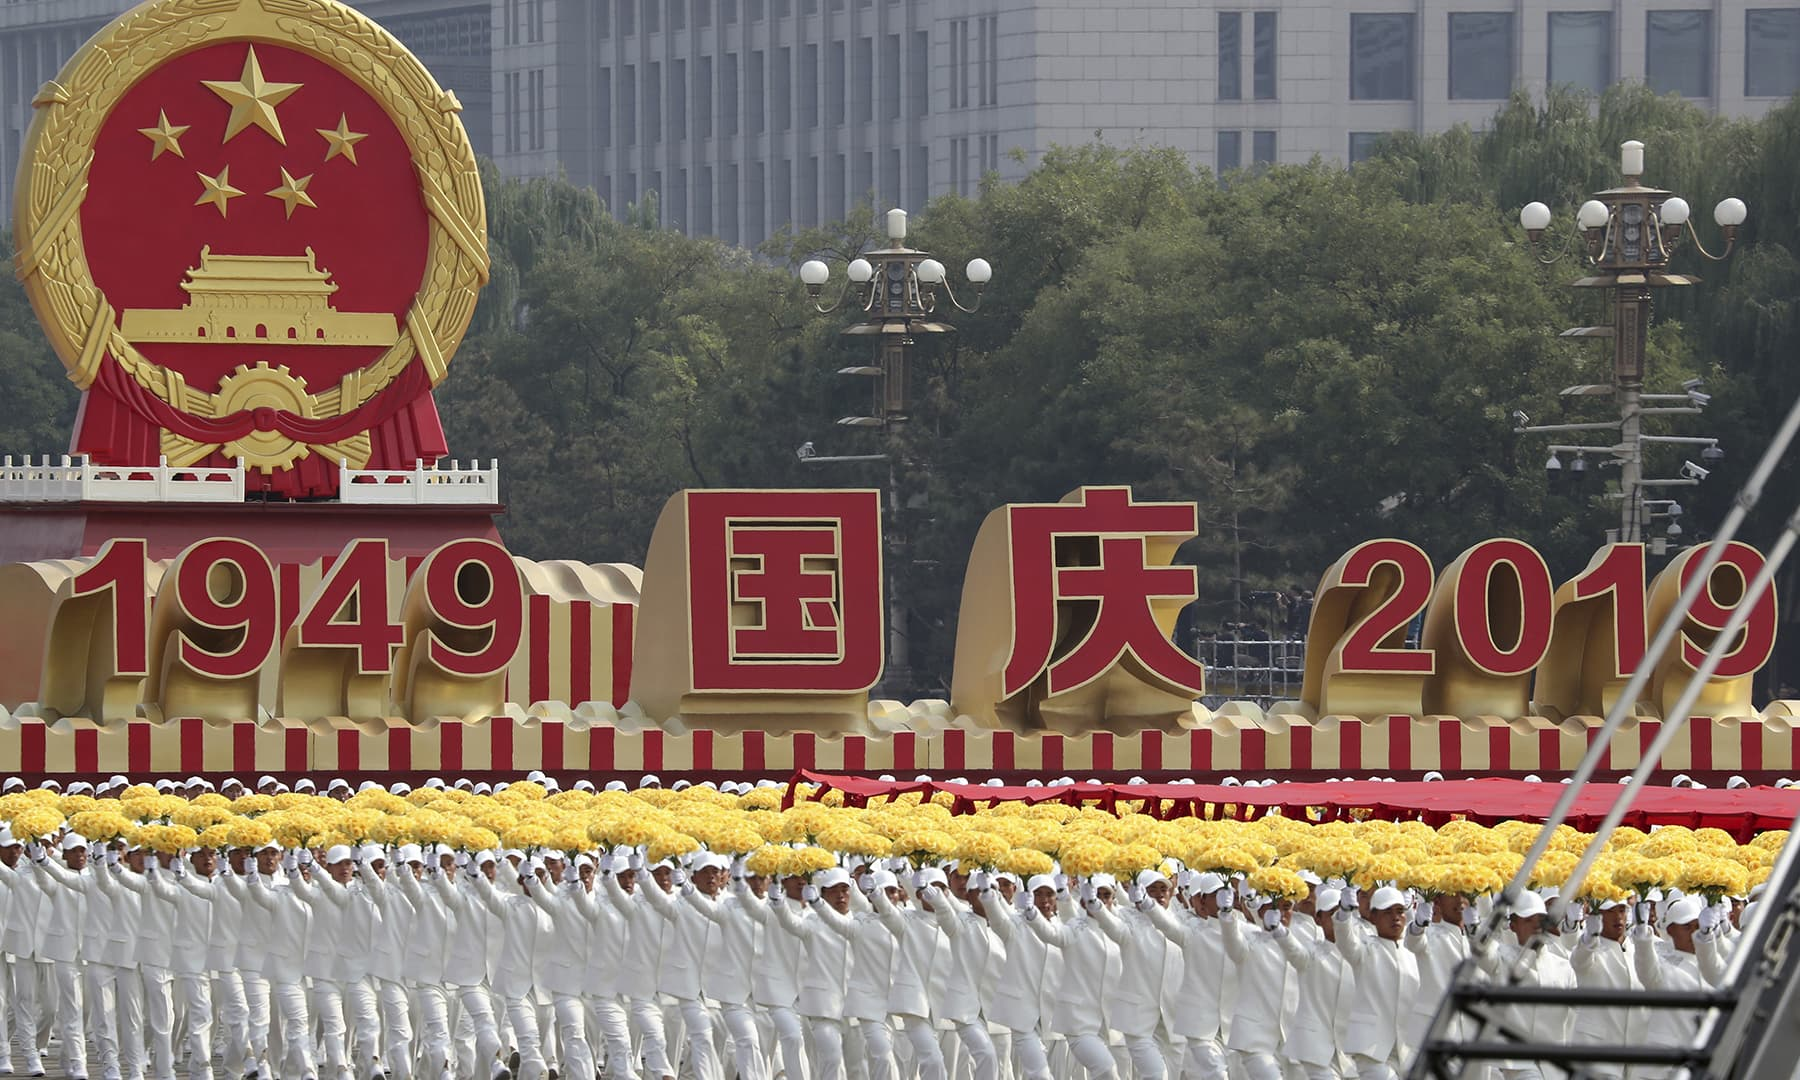 Participants march during the the celebration to commemorate the 70th anniversary of the founding of Communist China in Beijing on Tuesday, October 1, 2019. — AP